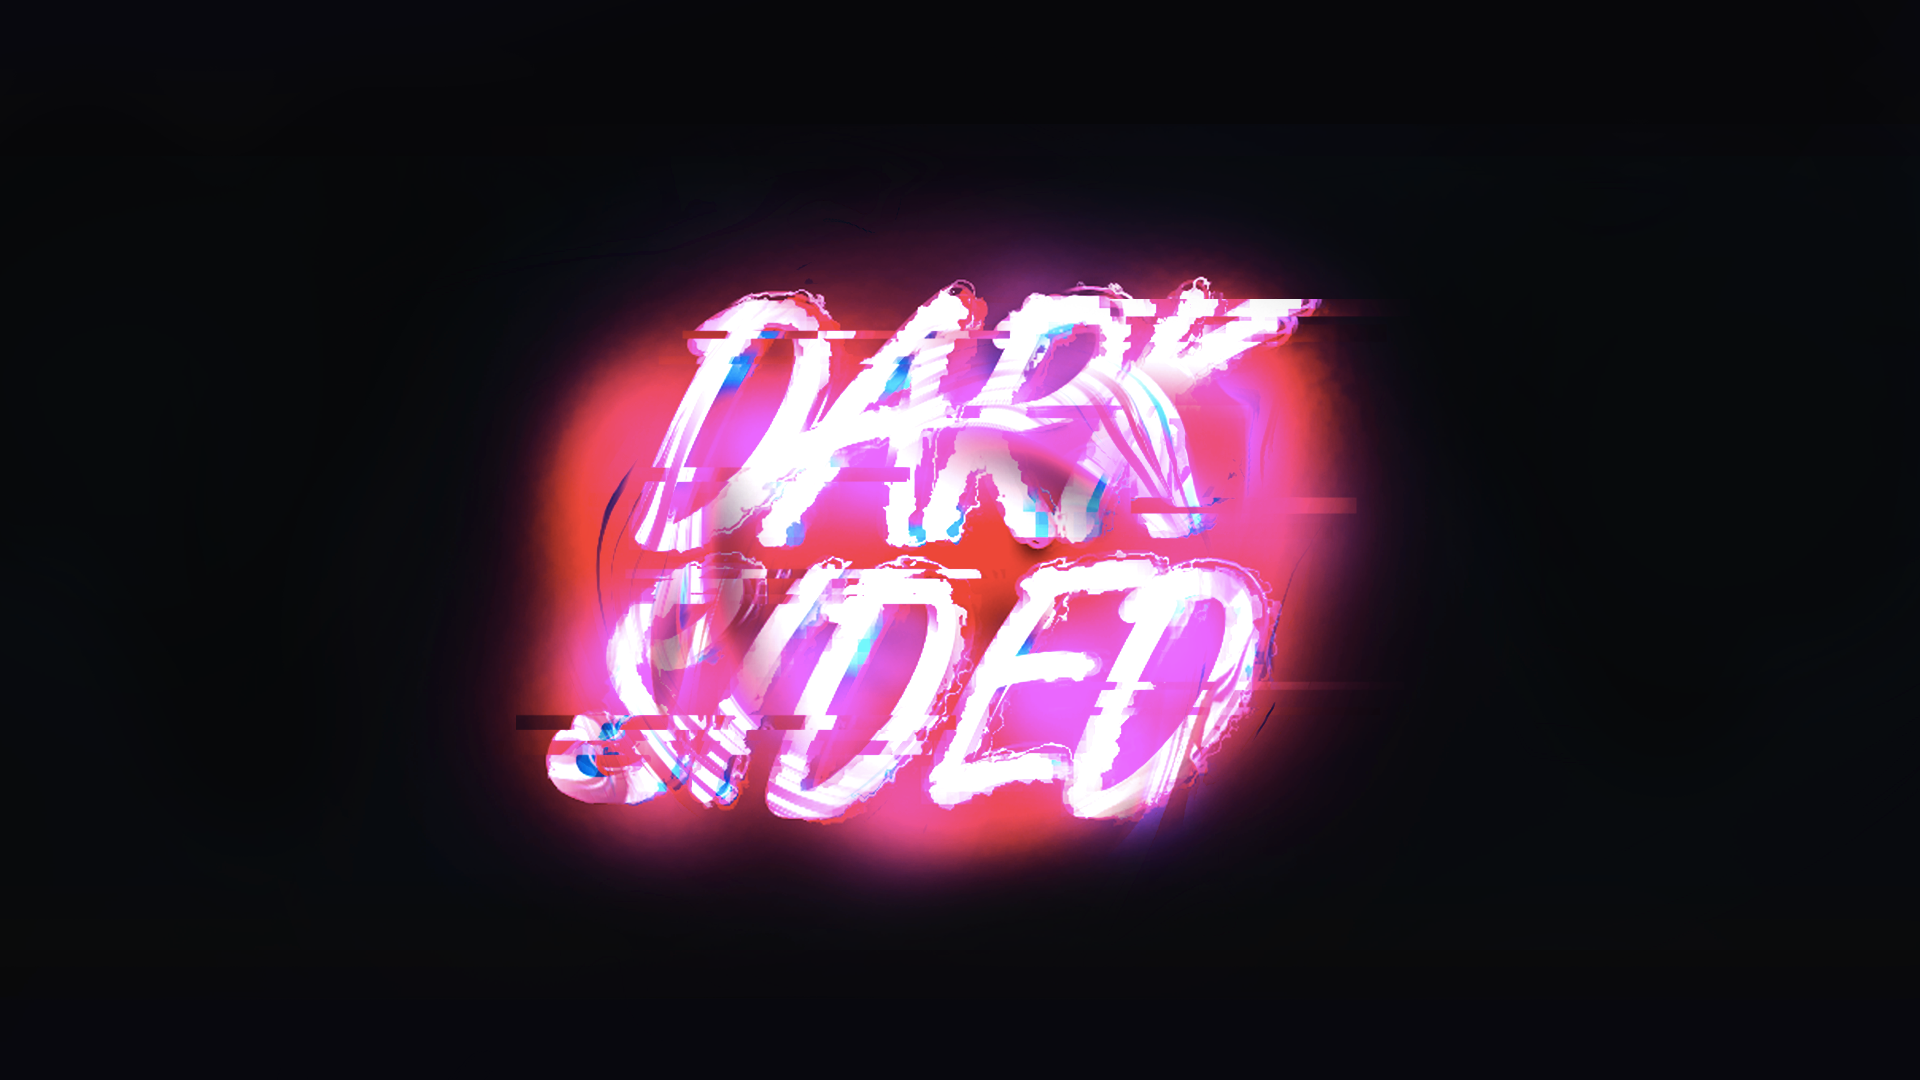 Wallpapers Dark Sided